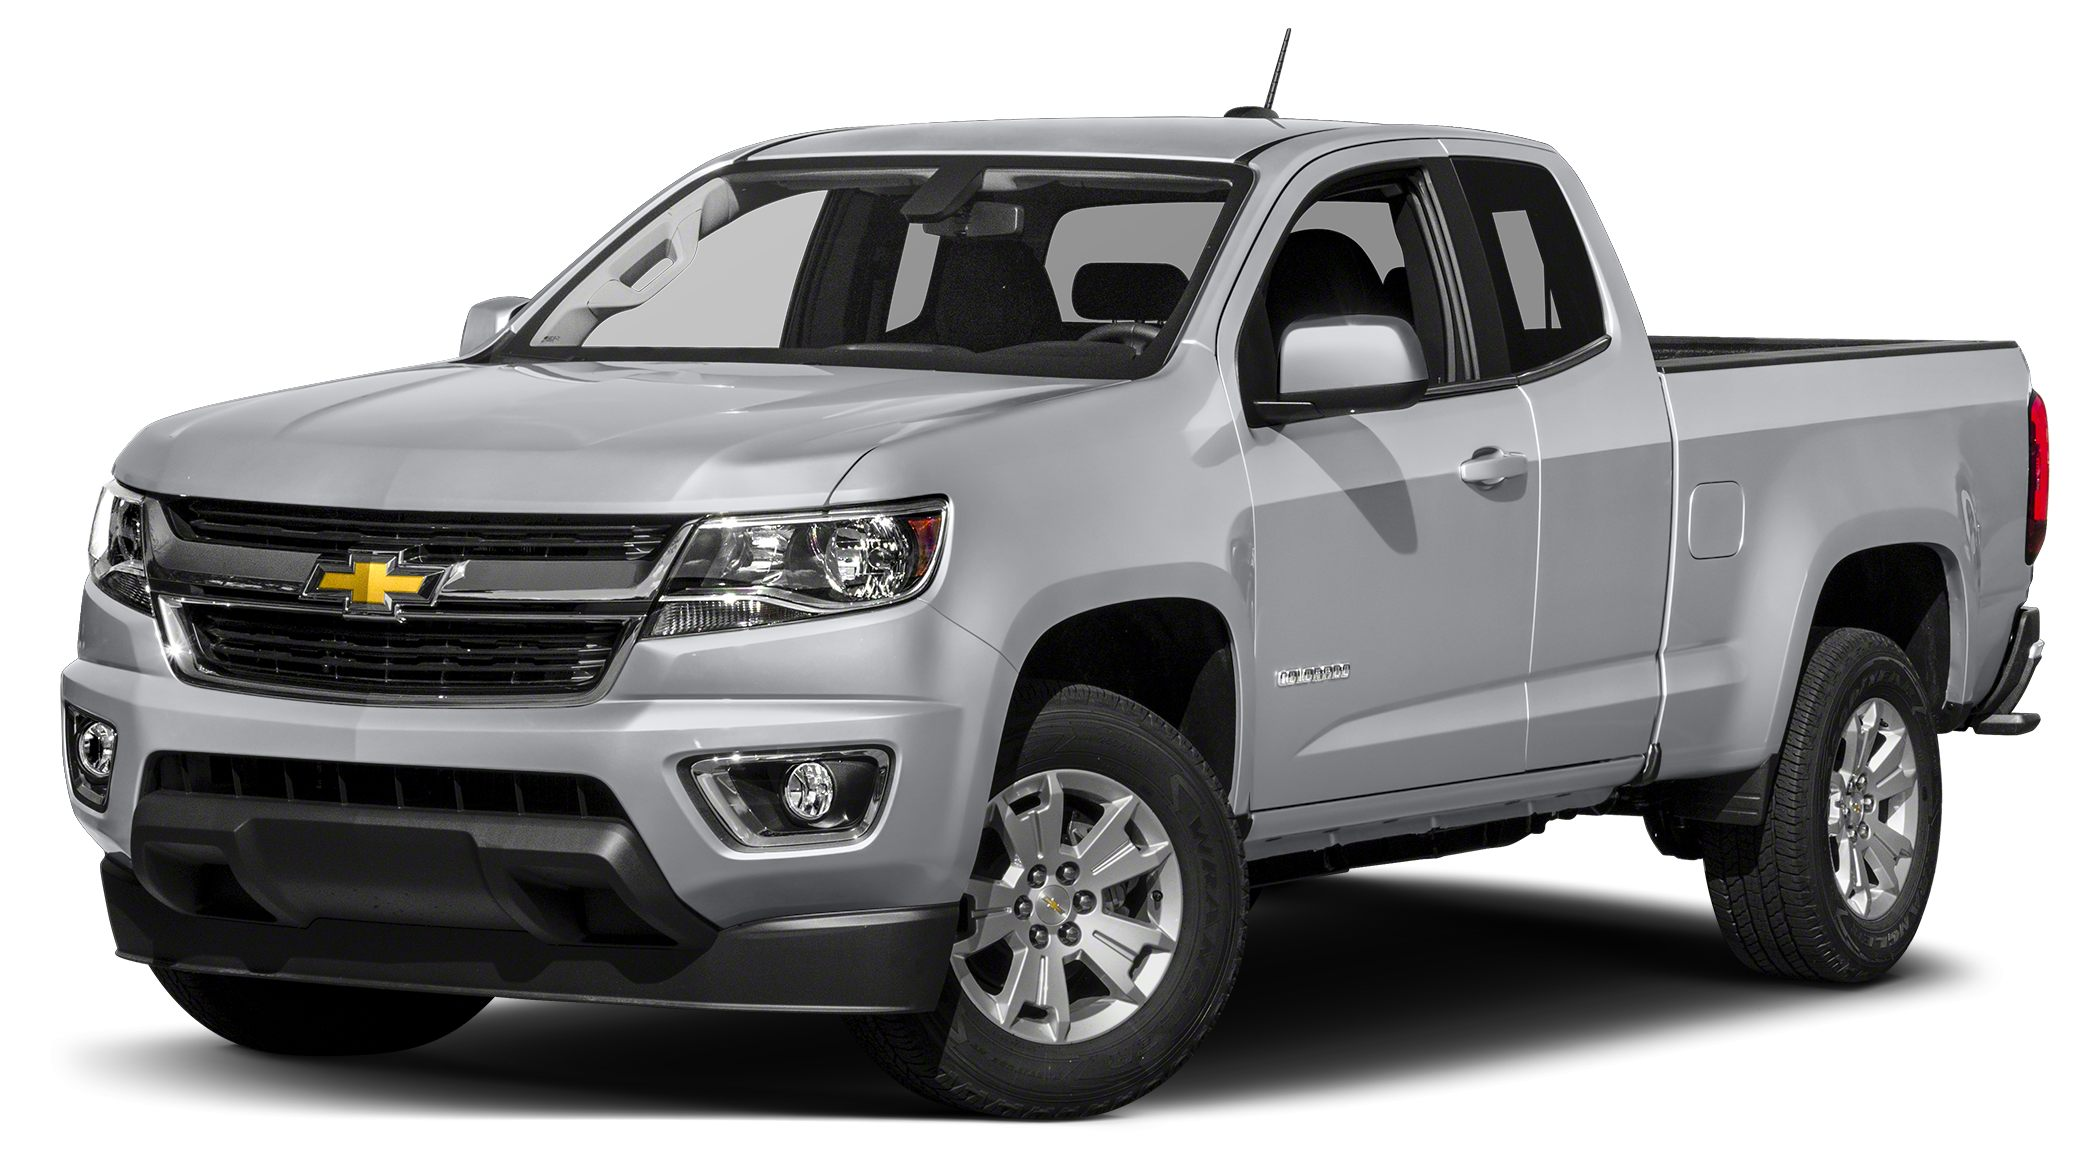 2018 Chevrolet Colorado LT Silver Ice Metallic 2018 Chevrolet Colorado LT RWD 8-Speed Automatic V6